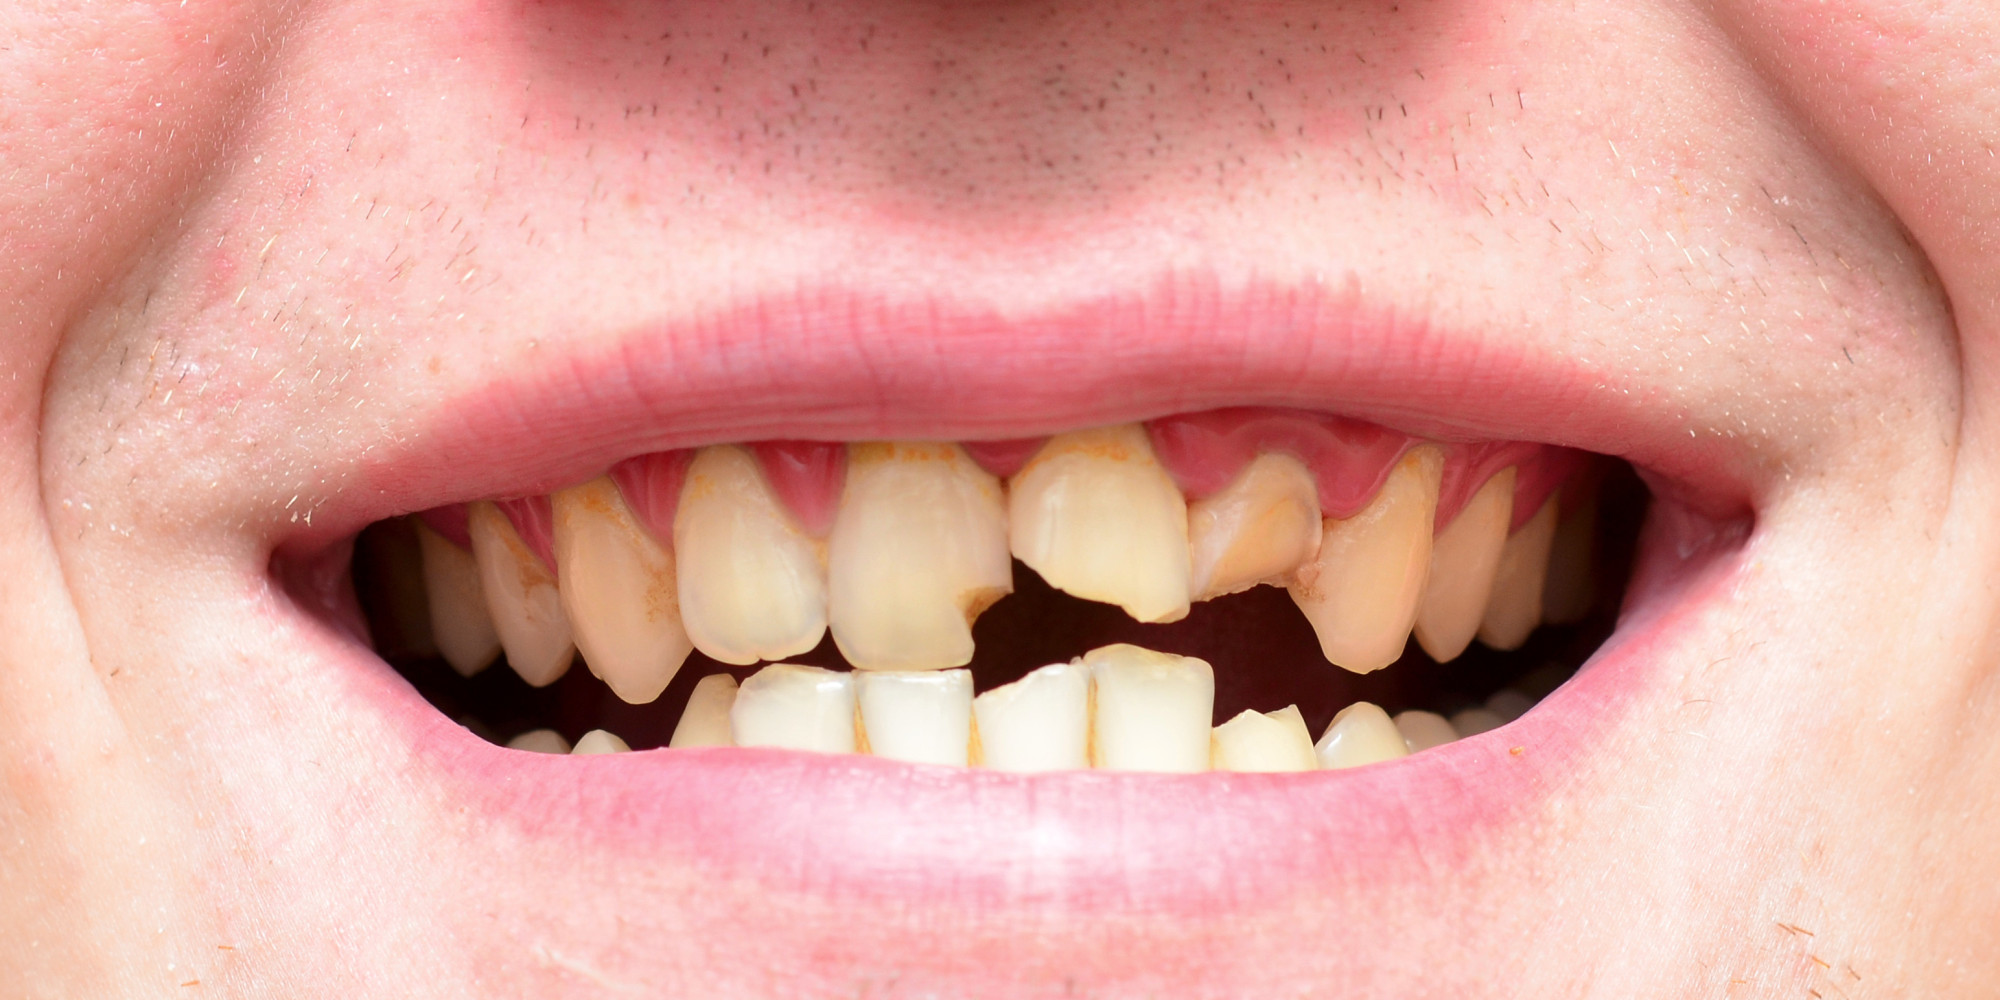 How did the rumour that all British people have bad teeth start?